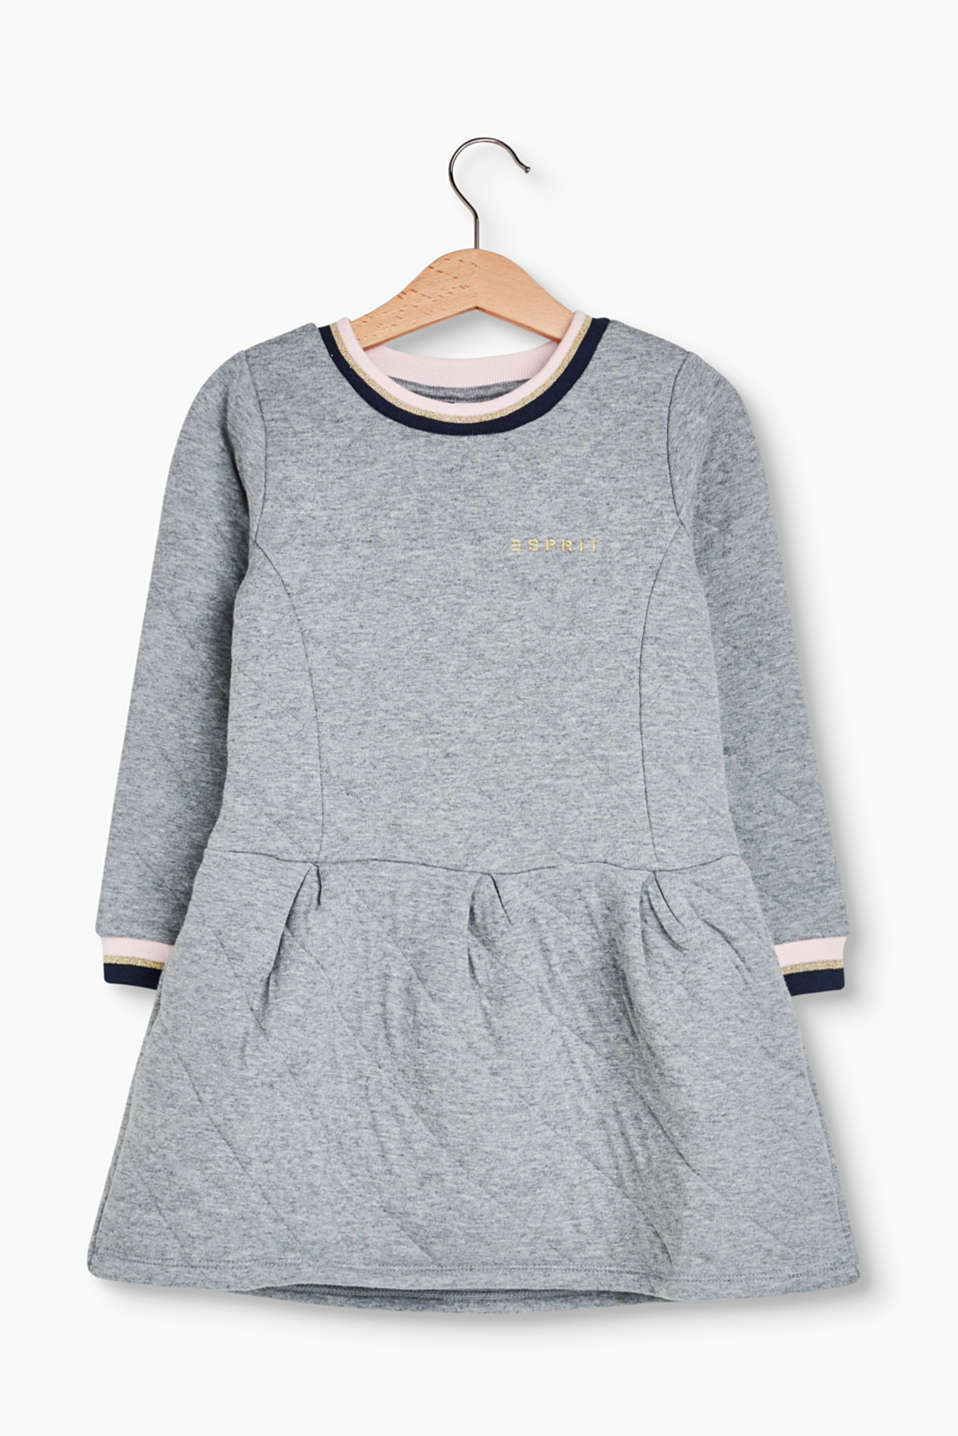 Sweatshirt dress with topstitching, striped ribbed cuffs and skirt with inverted pleats, made of soft blended cotton